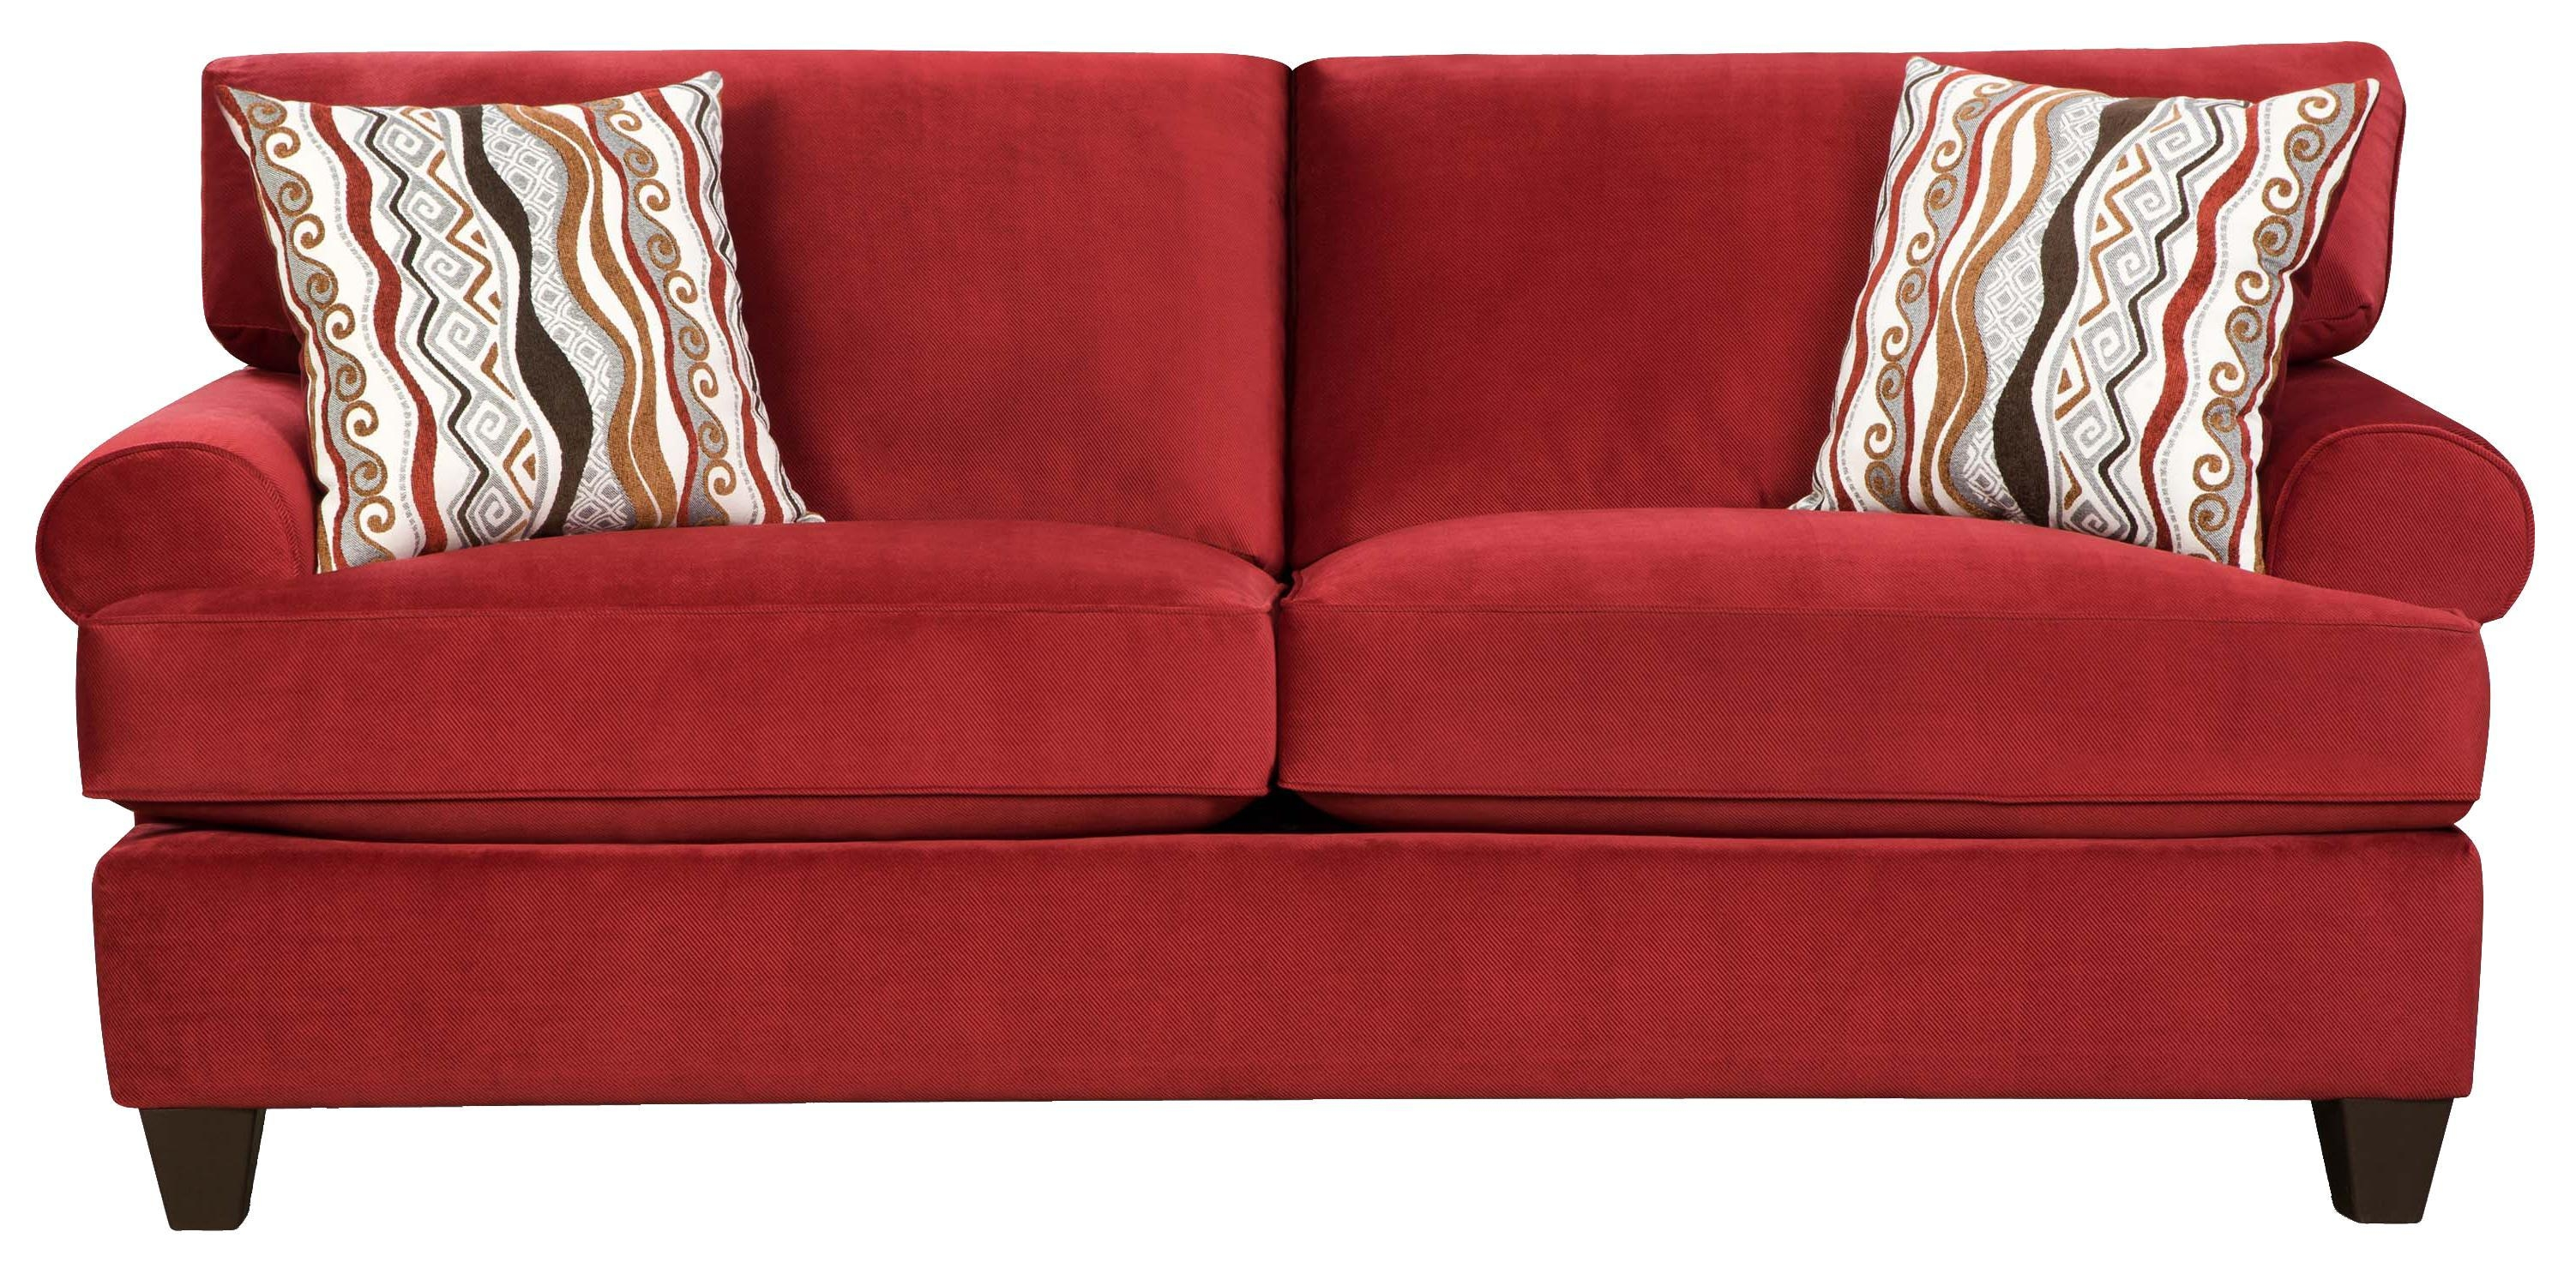 Corinthian 47B0 Casual And Contemporary Living Room Sofa – Vandrie Throughout Corinthian Sofas (View 20 of 20)